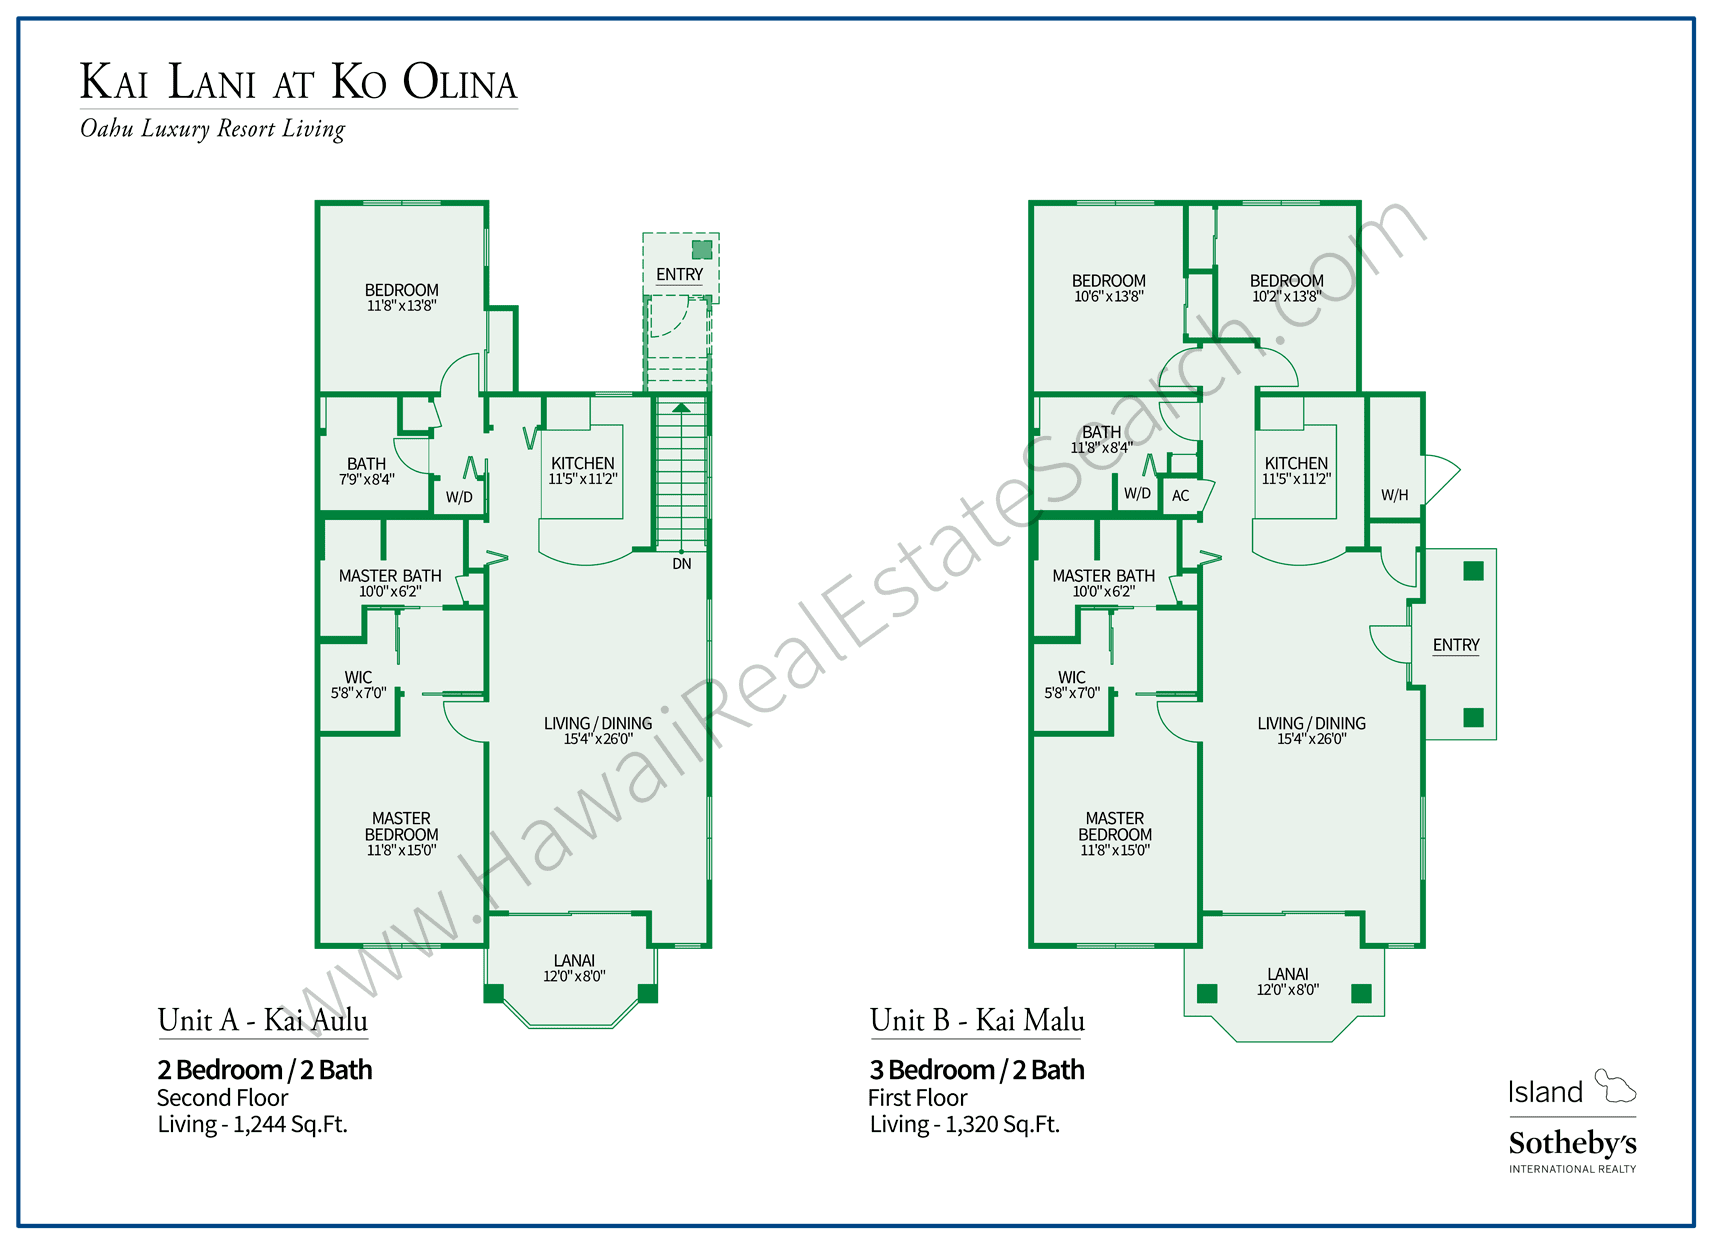 Floor Plans Kai Lani at Ko Olina